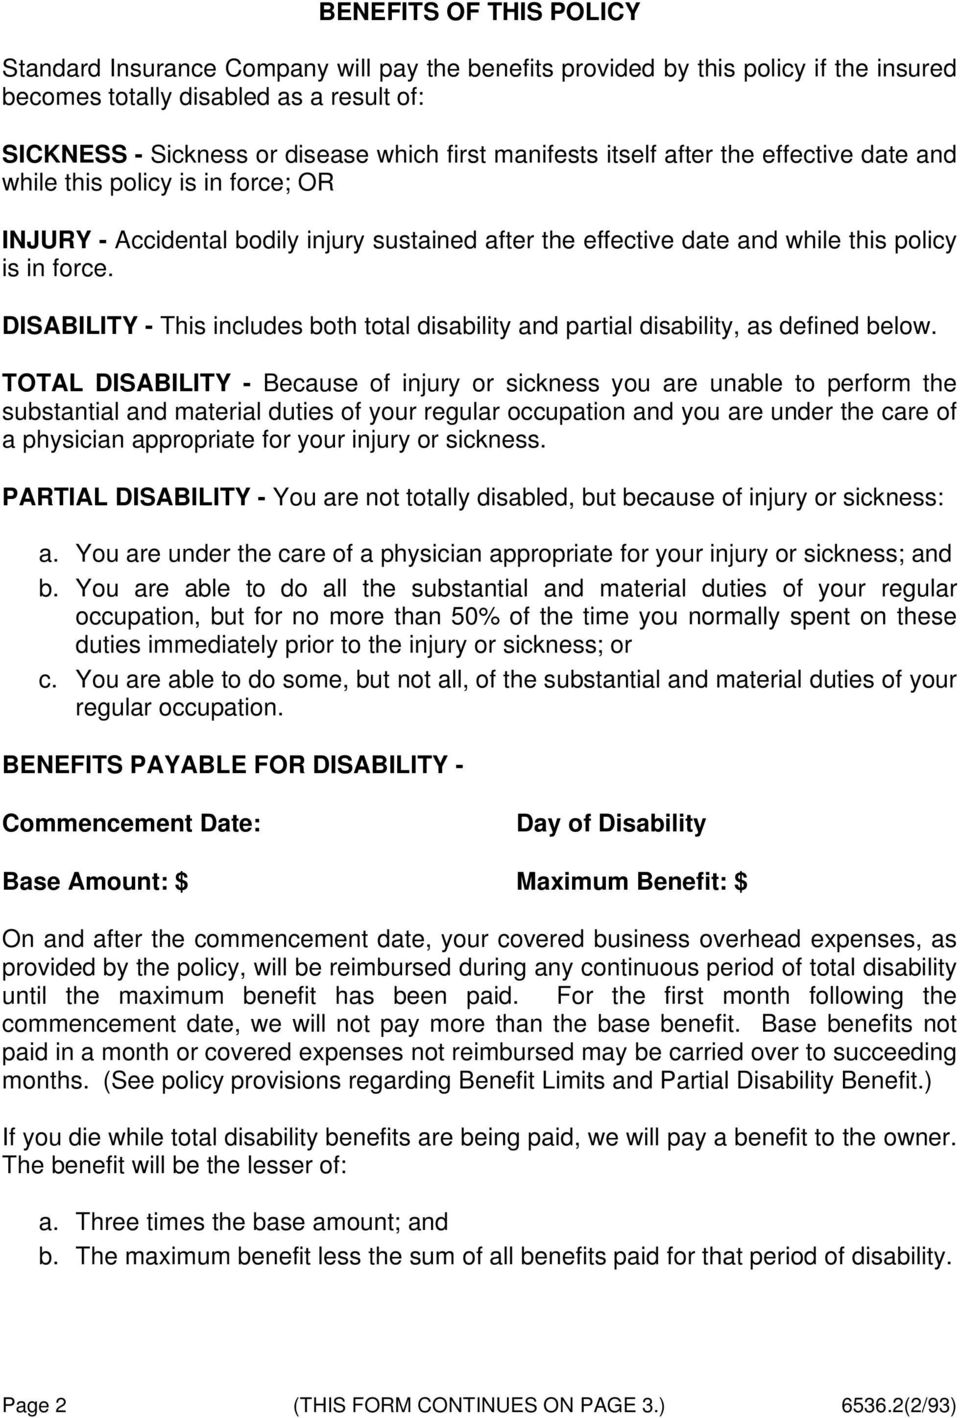 DISABILITY - This includes both total disability and partial disability, as defined below.